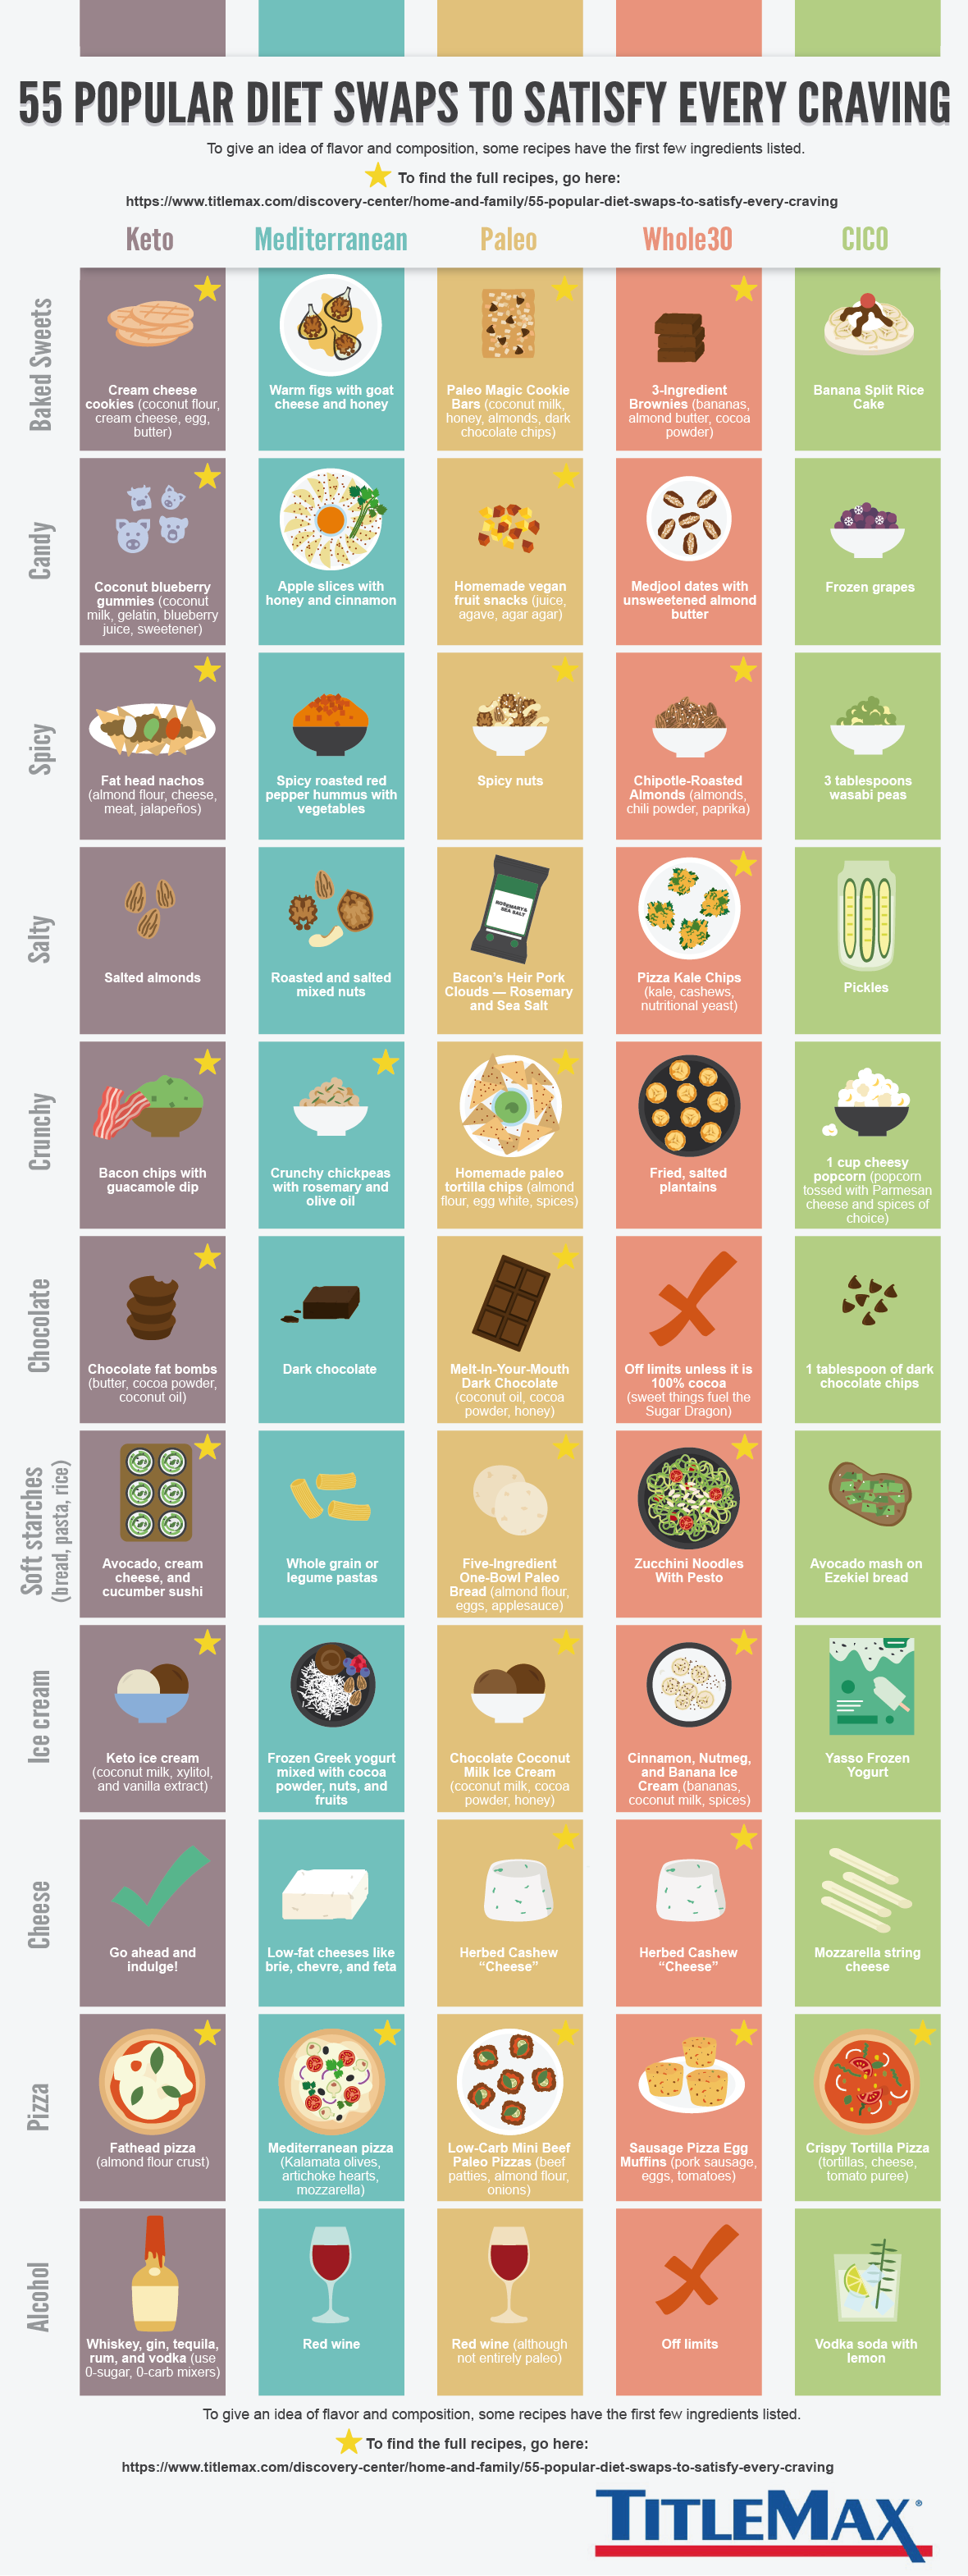 55 Popular Diet Swaps to Satisfy Every Craving